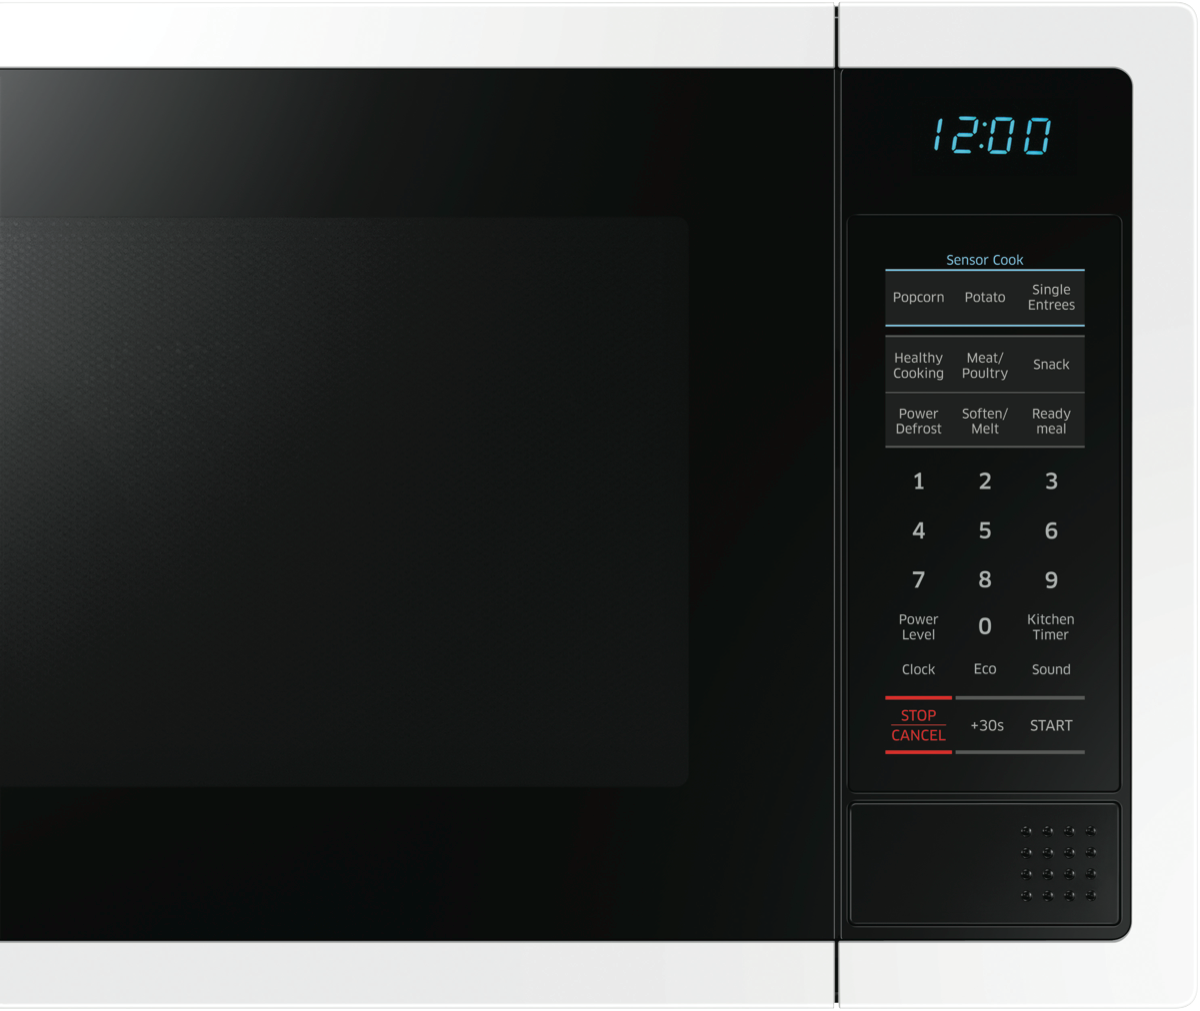 Samsung Me6124w 1 34l 1000w White Microwave At The Good Guys